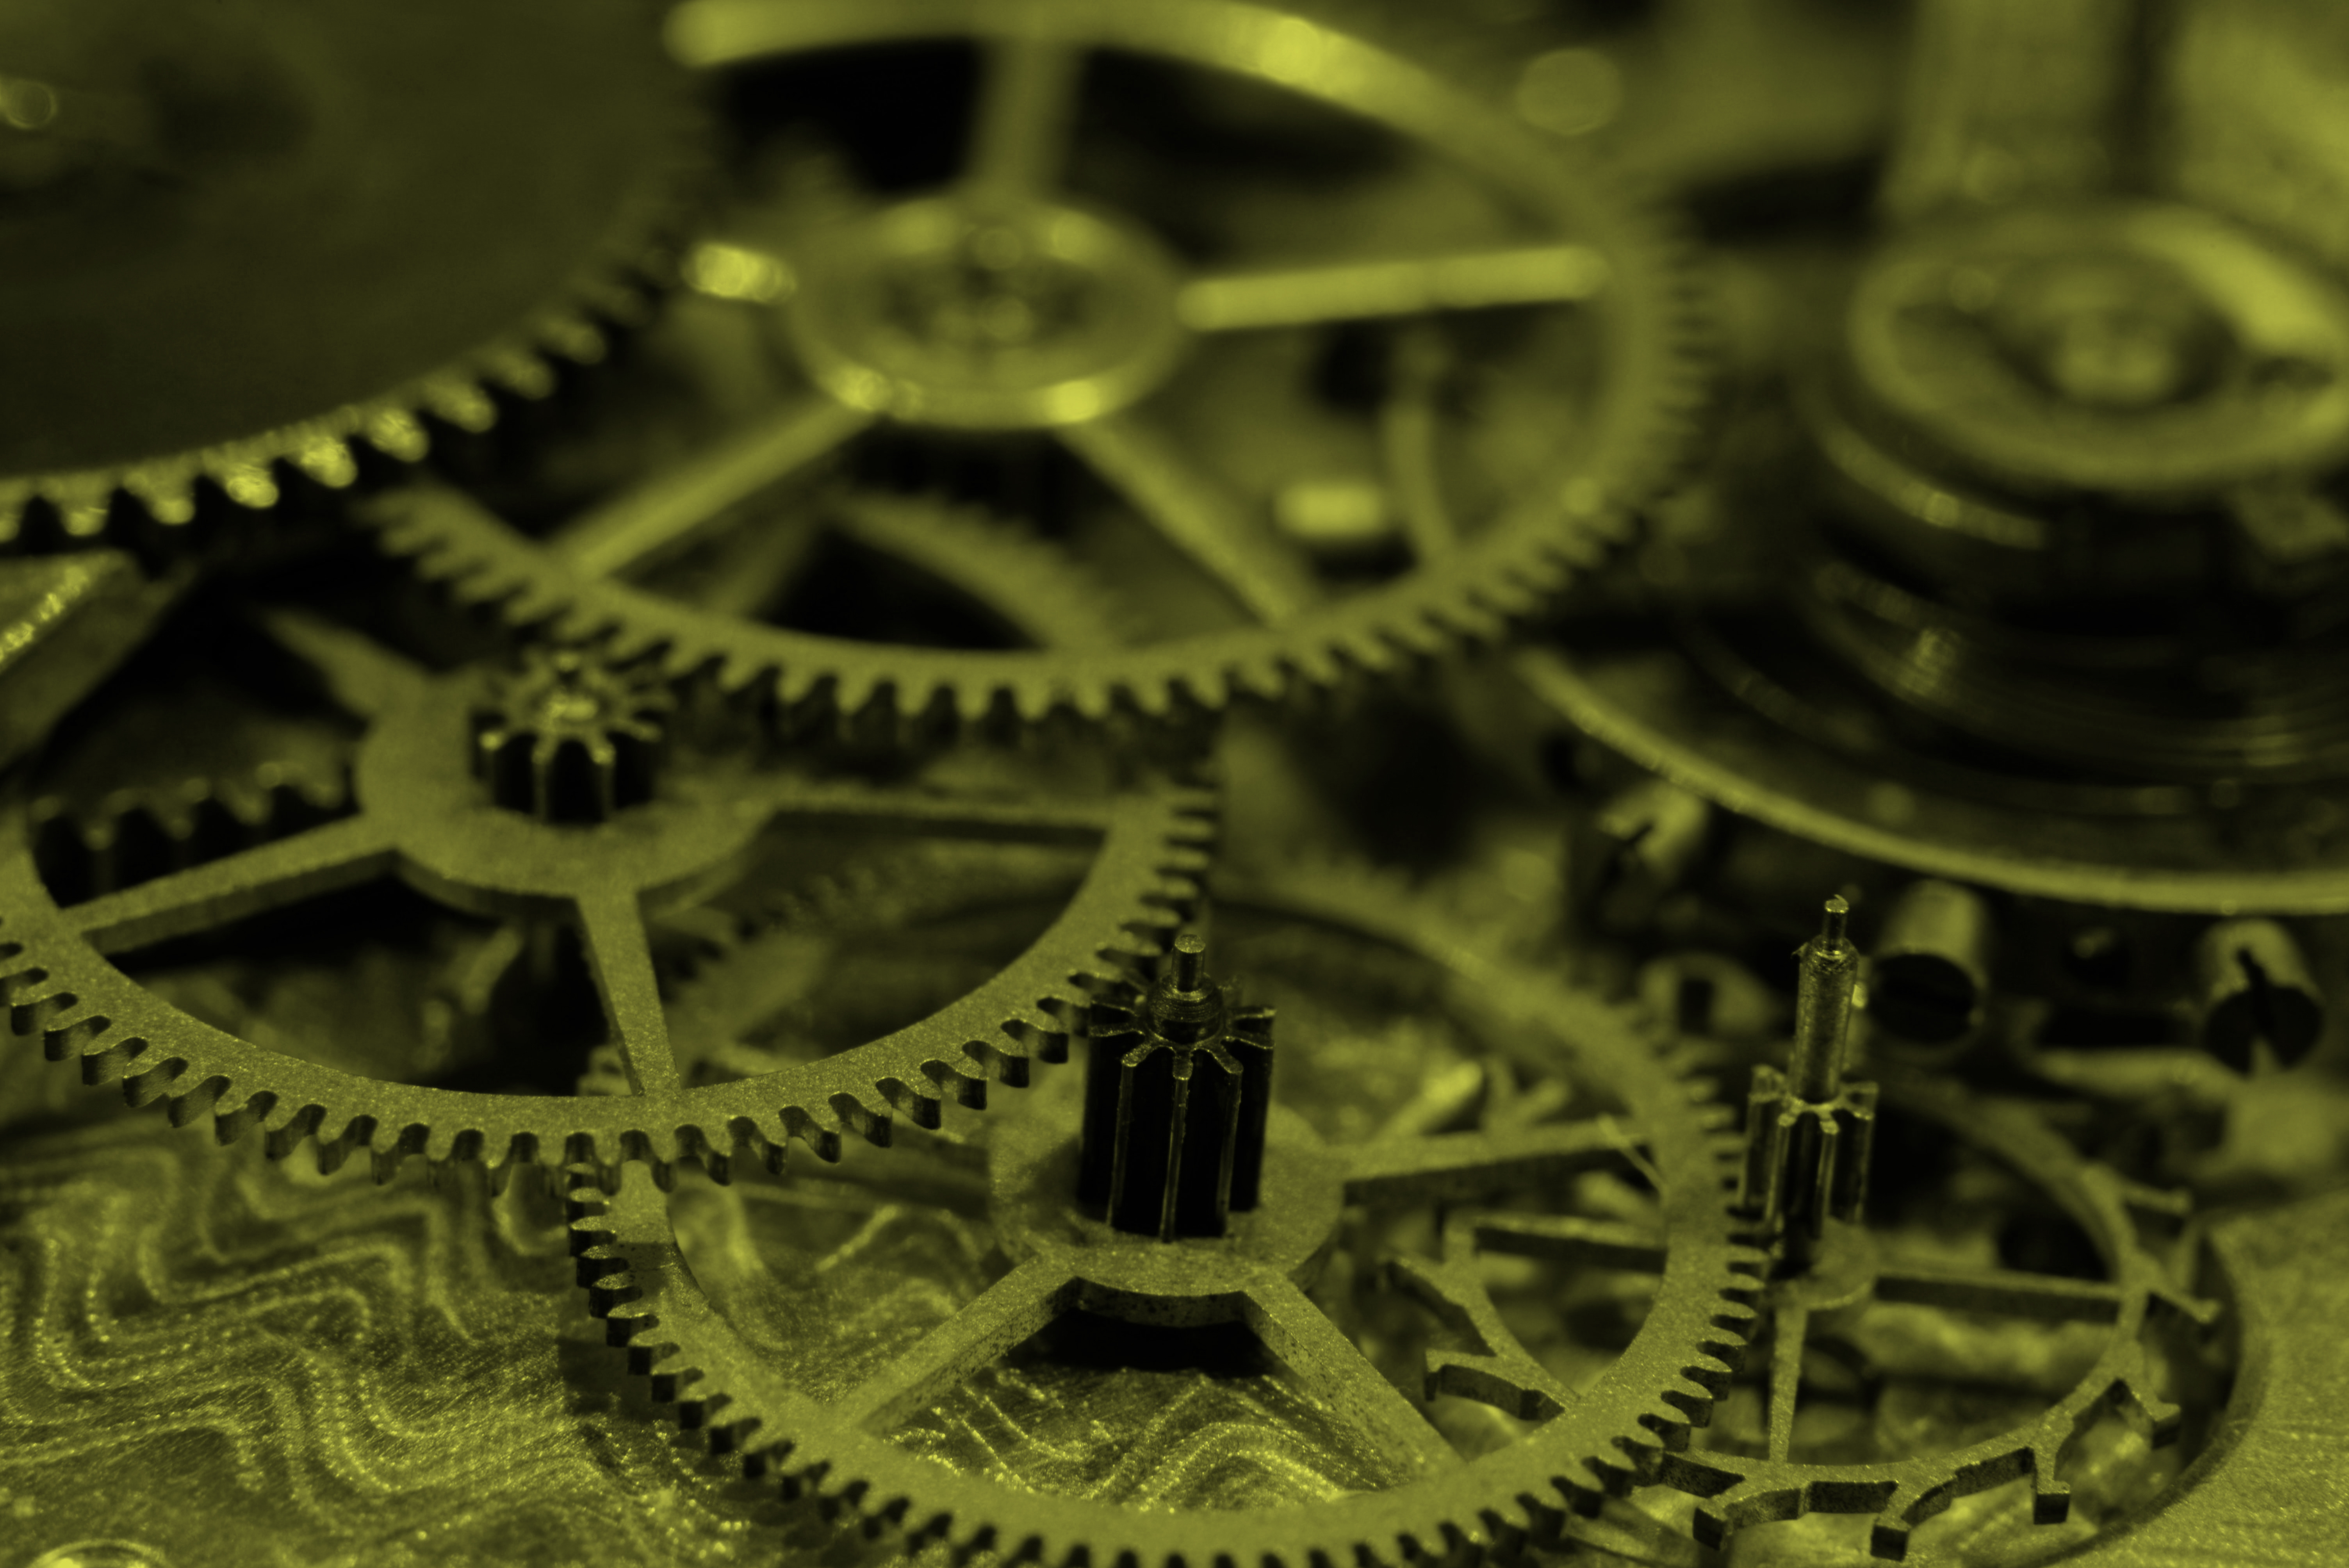 Several cogs laid on top of one another.